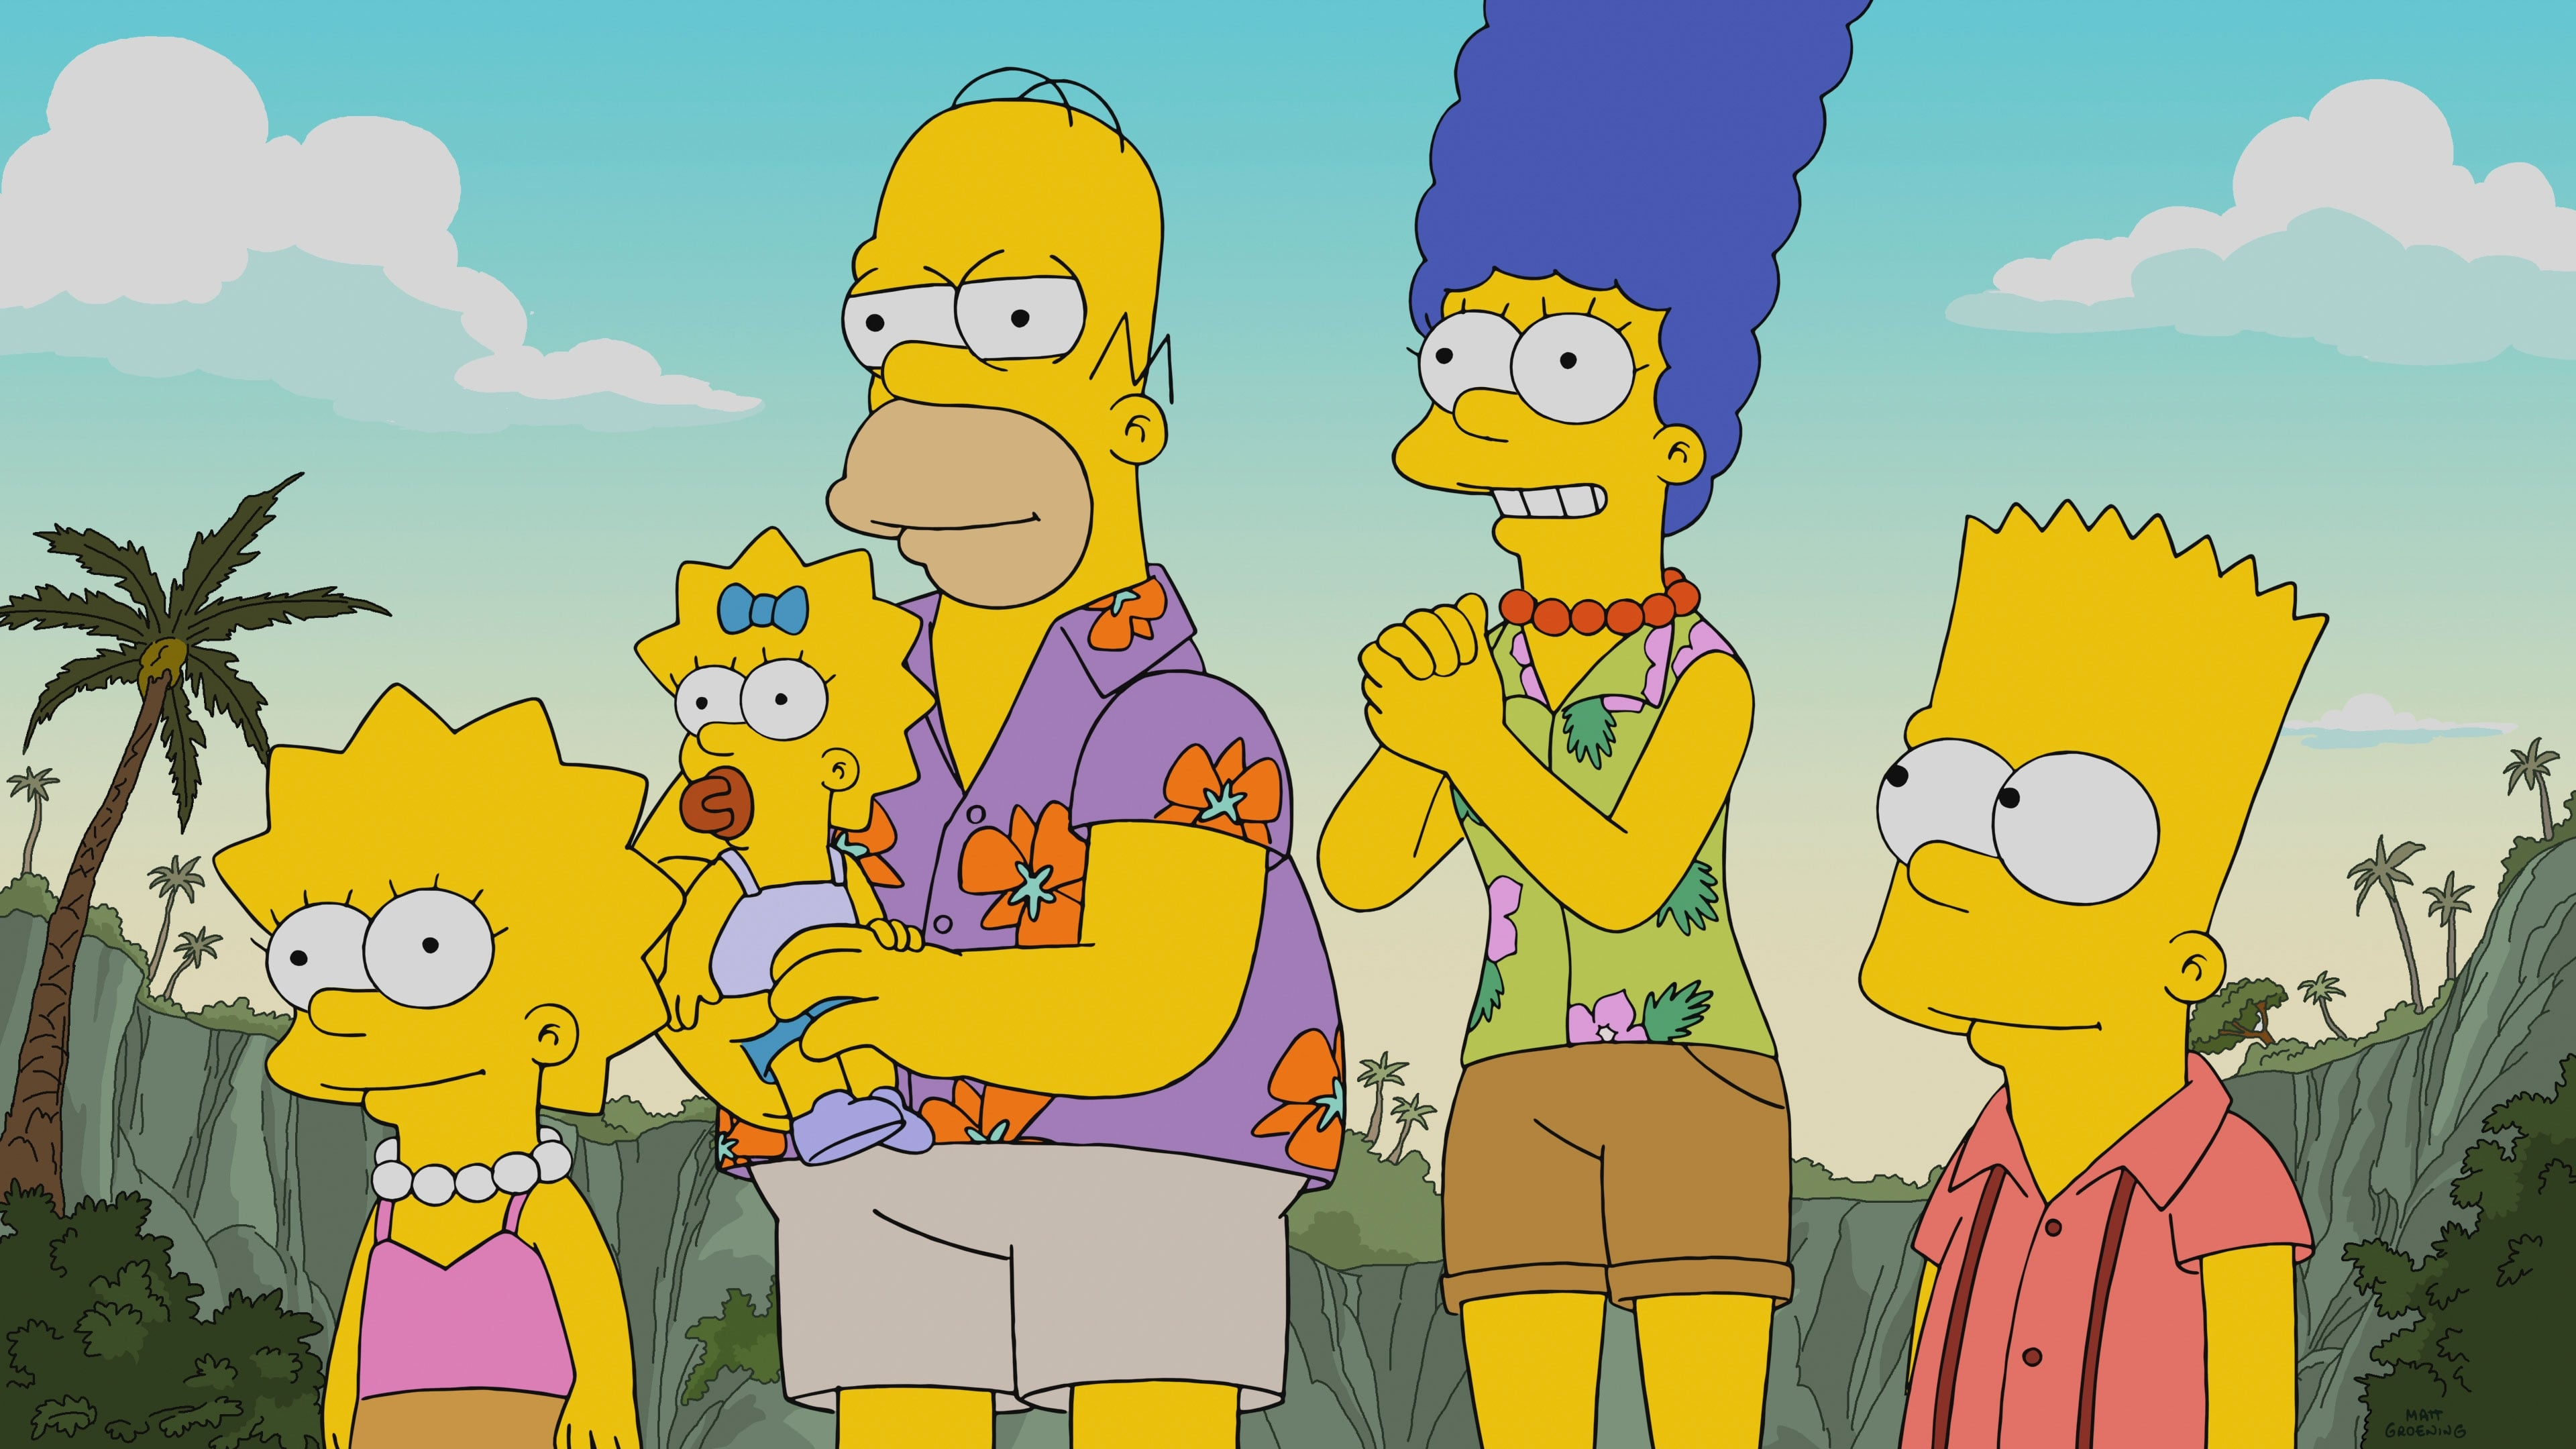 The Simpsons - Season 30 Episode 4 : Treehouse of Horror XXIX